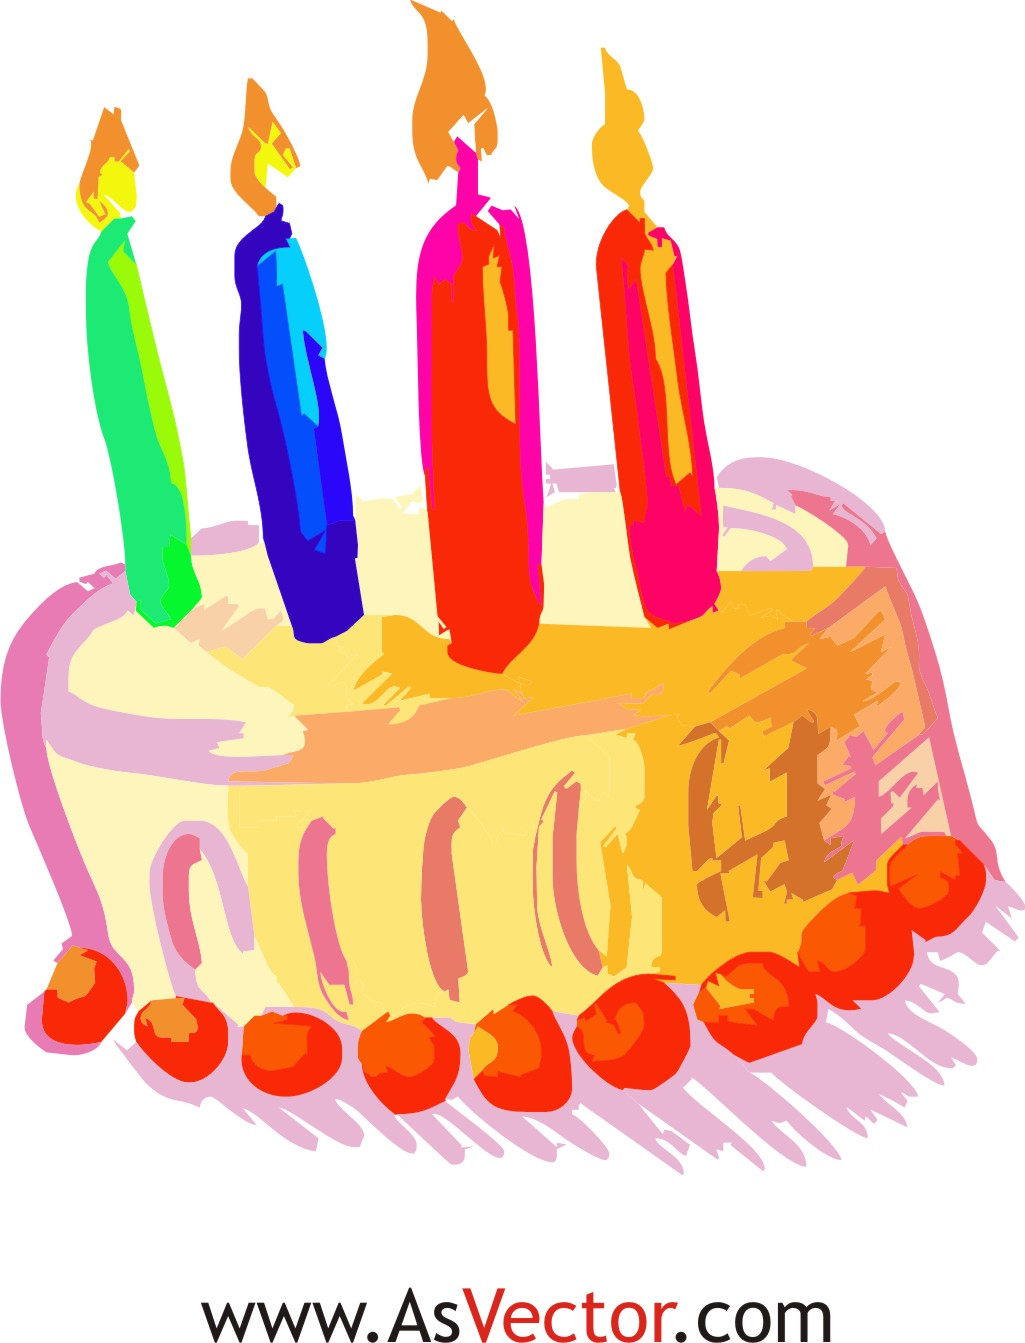 free clipart birthday wishes ; 1737bd3ae19d3d5d3af8d95031be99a5